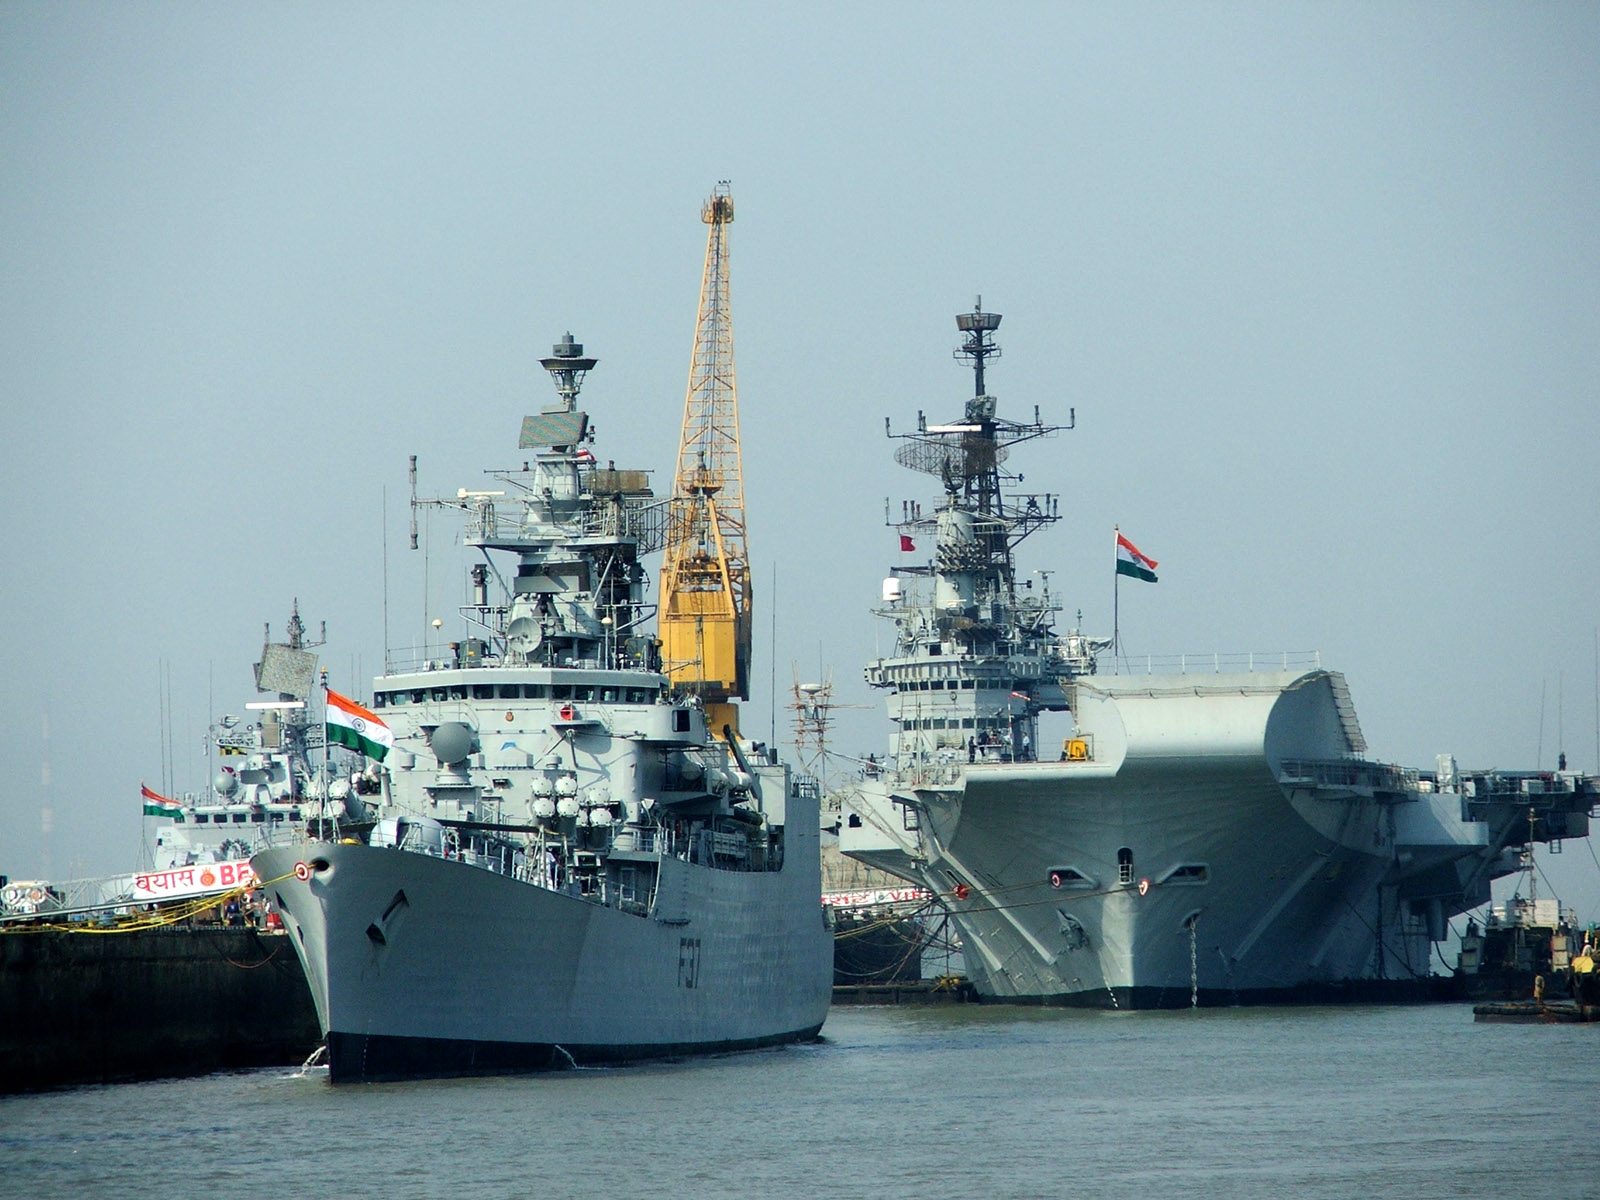 File:Indian Navy ships.jpg - Wikimedia Commons